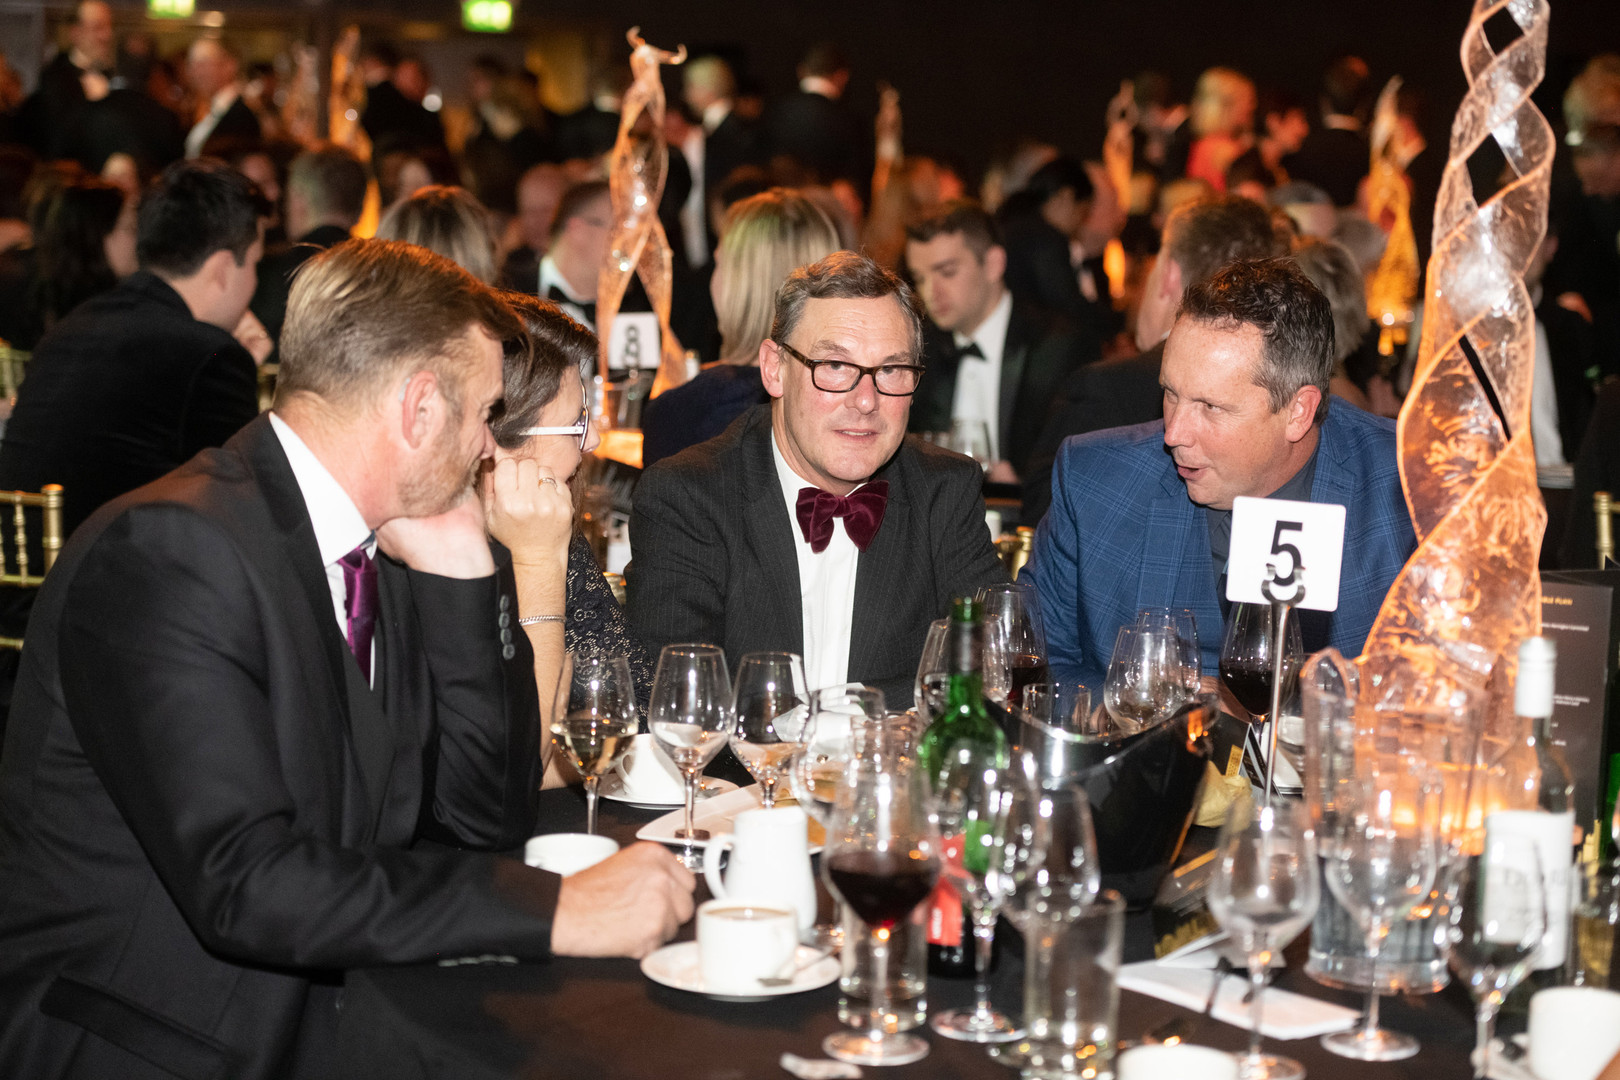 SurreyPropertyAwards_Nov2019_313.jpg